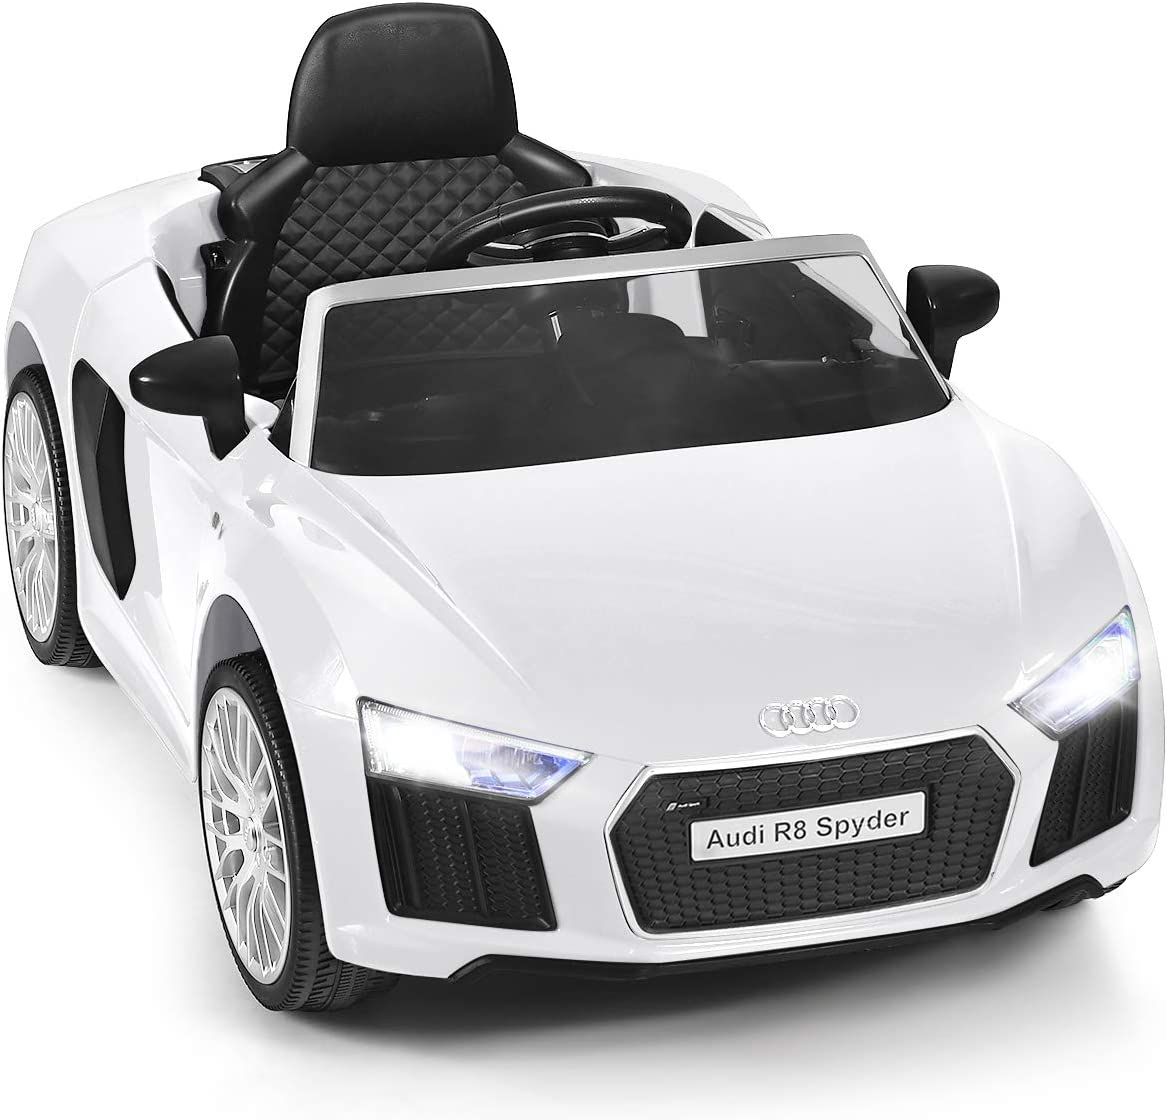 HONEY JOY Ride On Car, 12V Licensed Audi R8 Electric Vehicle for Kids, Manual and Parental Remote Control, 3 Speeds, Double Lockable Doors, LED Lights, MP3, Music (White)